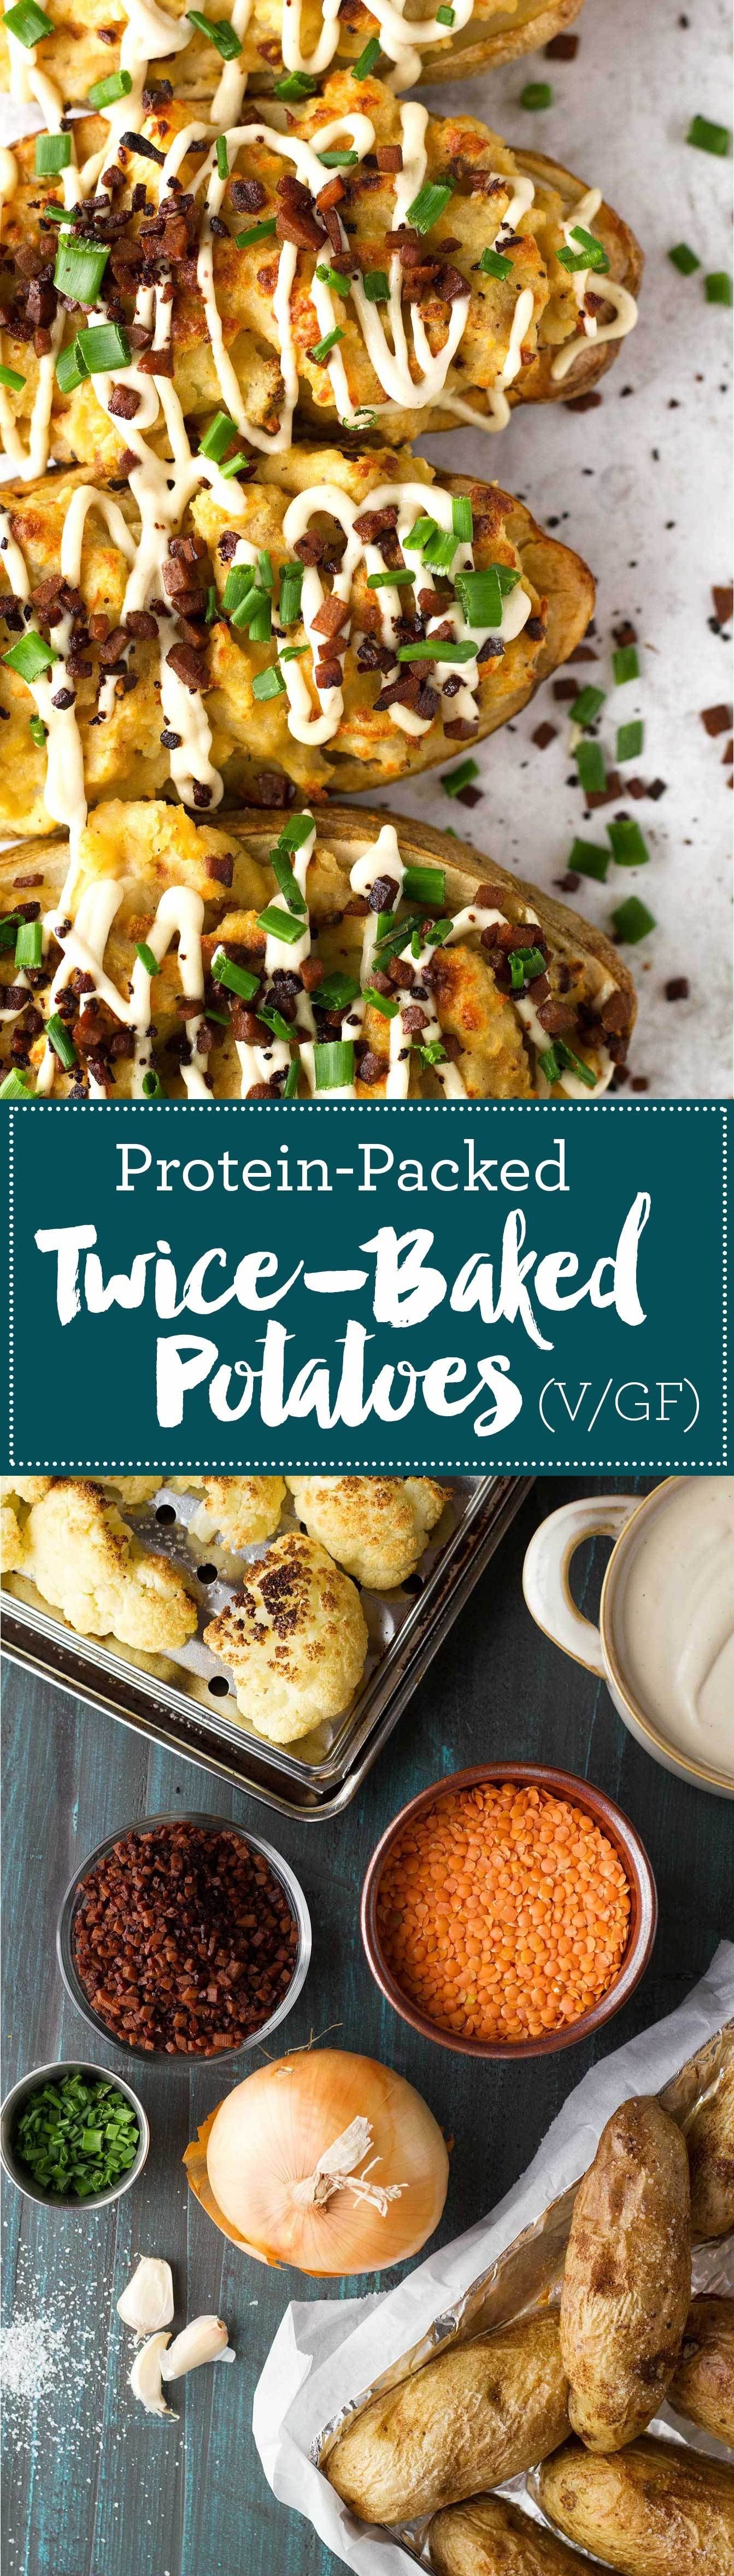 Protein Packed Twice Baked Potatoes